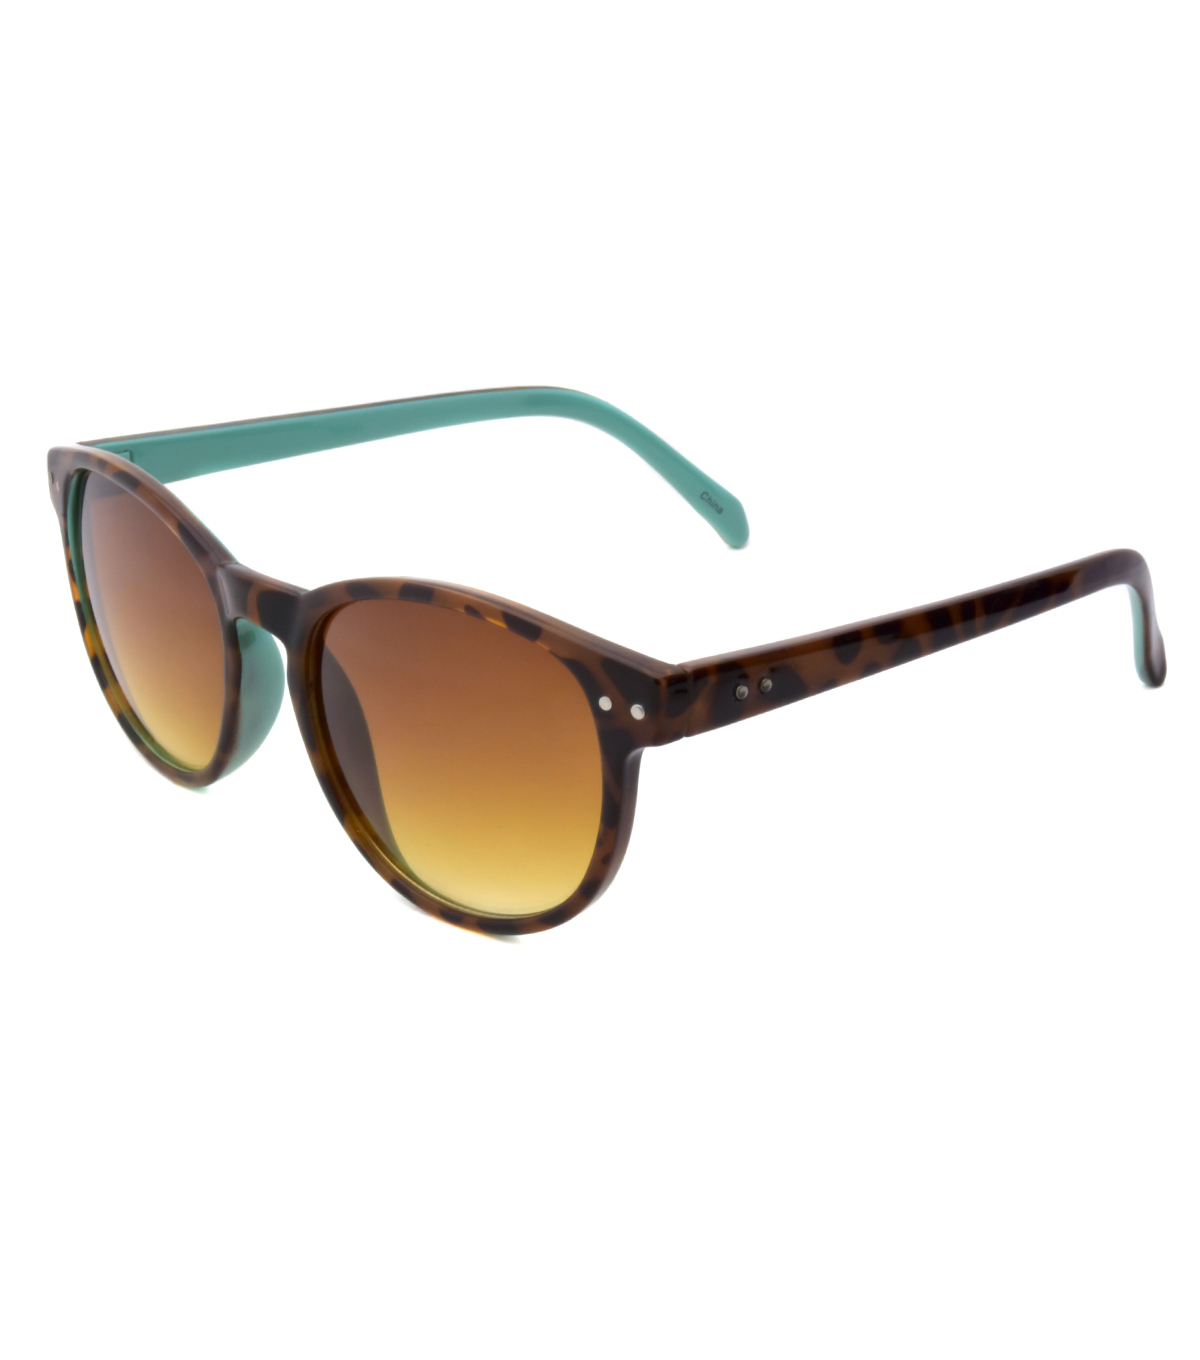 Sunglasses with Round Frame-Brown & Turquoise